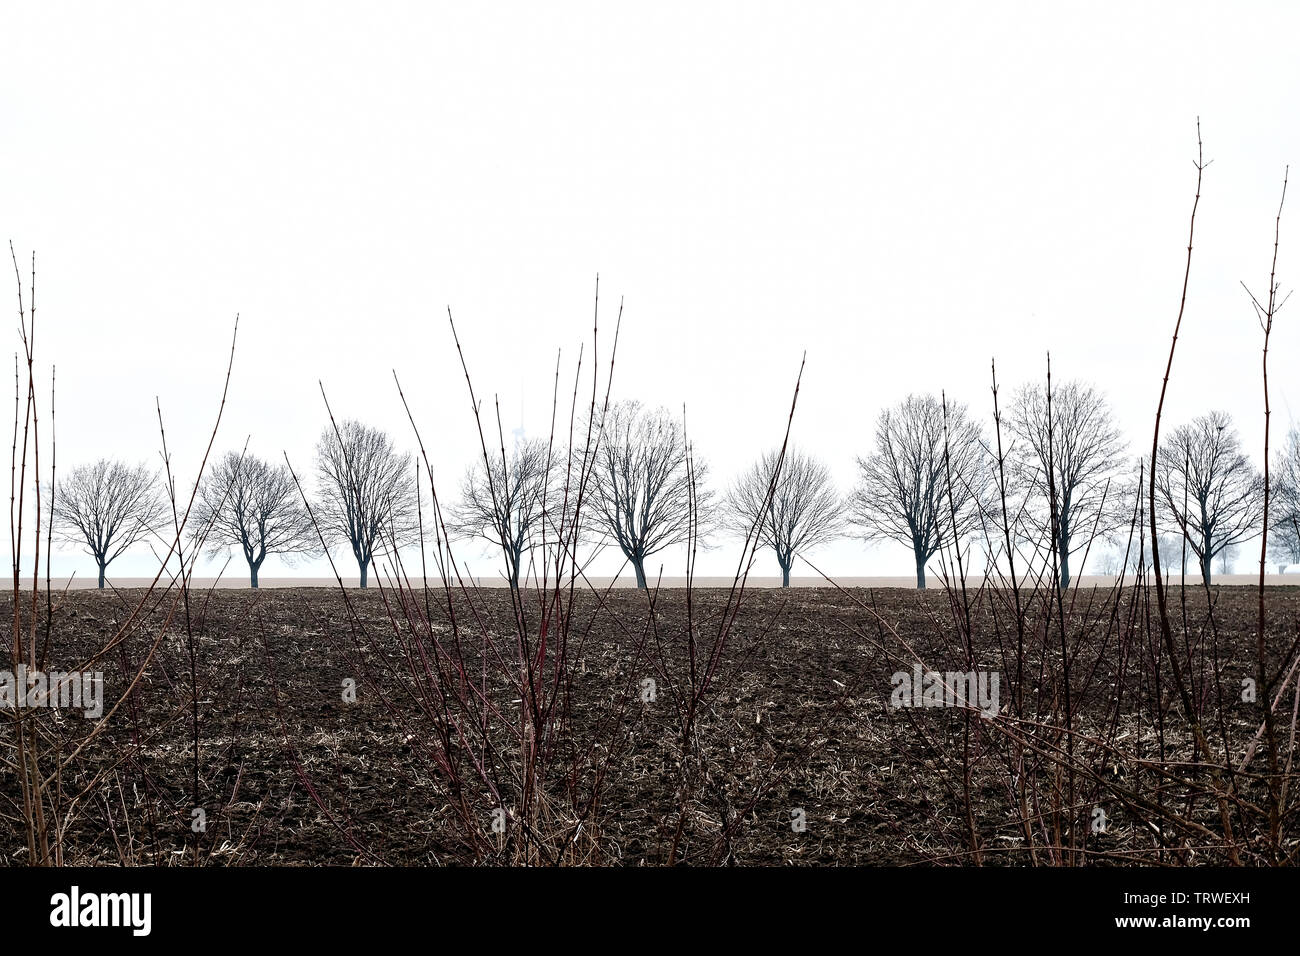 bare trees in a row on field in winter - Stock Image